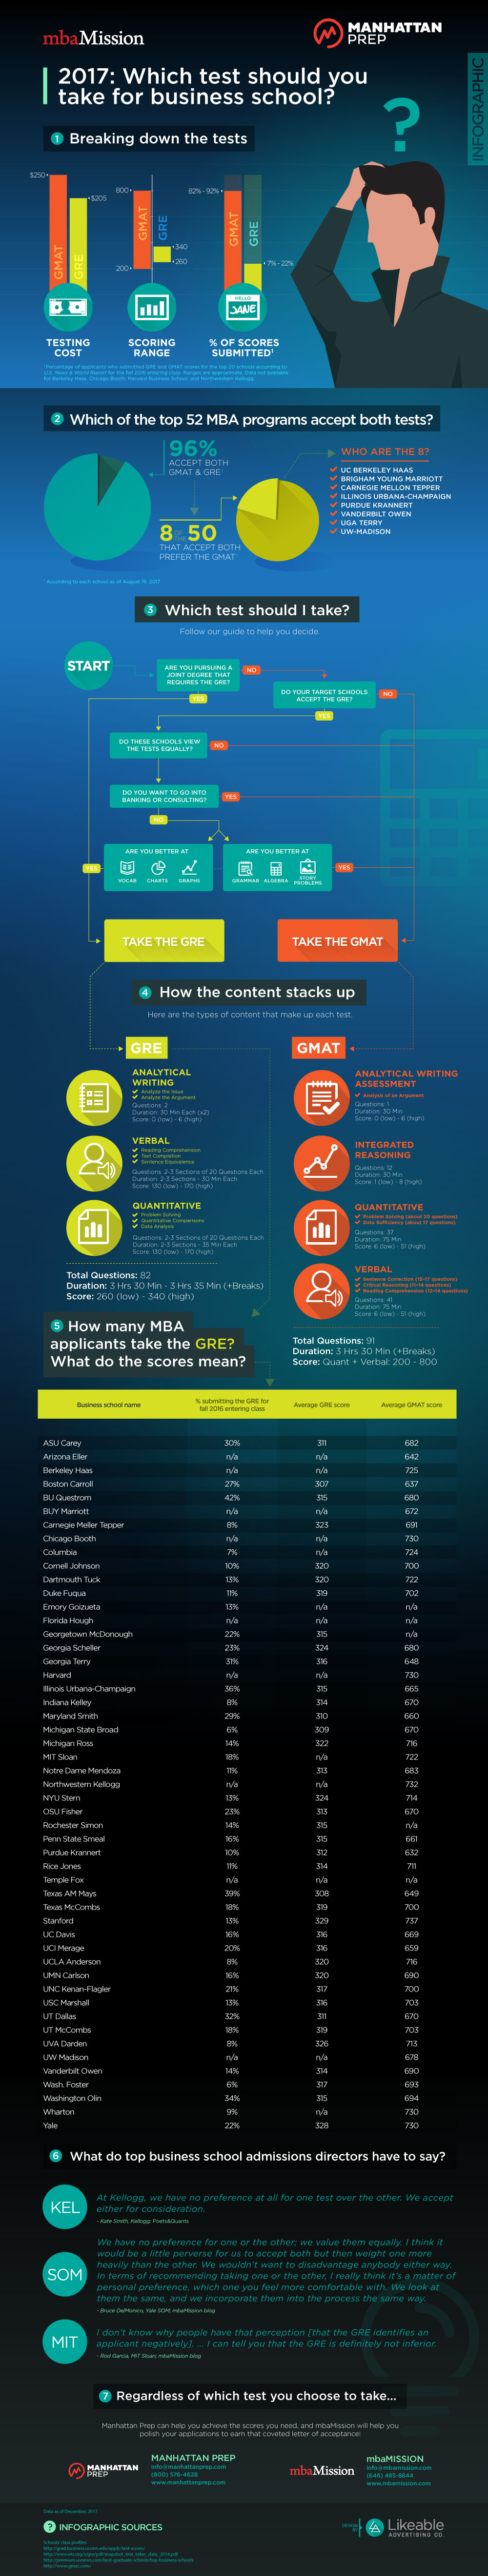 mbaMission and Manhattan Prep's GMAT vs. GRE Infographic